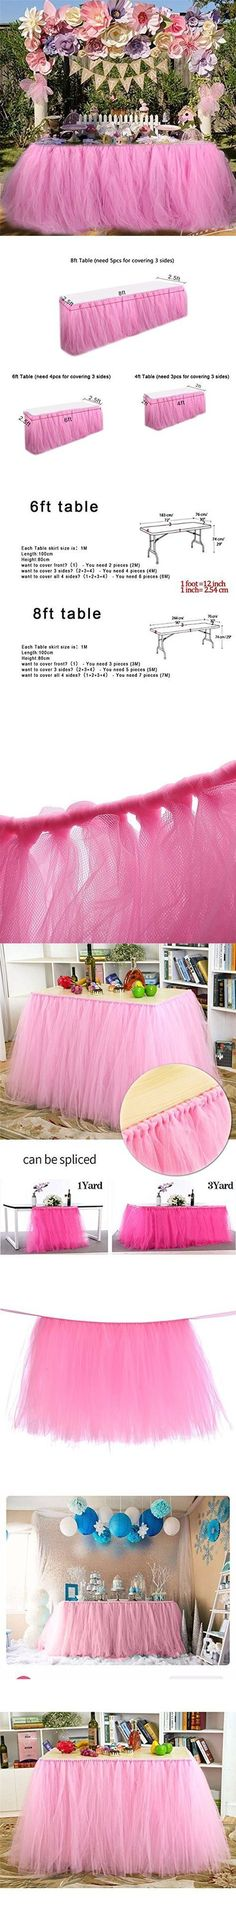 BIG BIG XUAN Tulle Tutu Table Skirt Christmas Table Covers Decorations for Home Wedding Birthday Party Table Decorations (91.5cmX80cm, Pink)